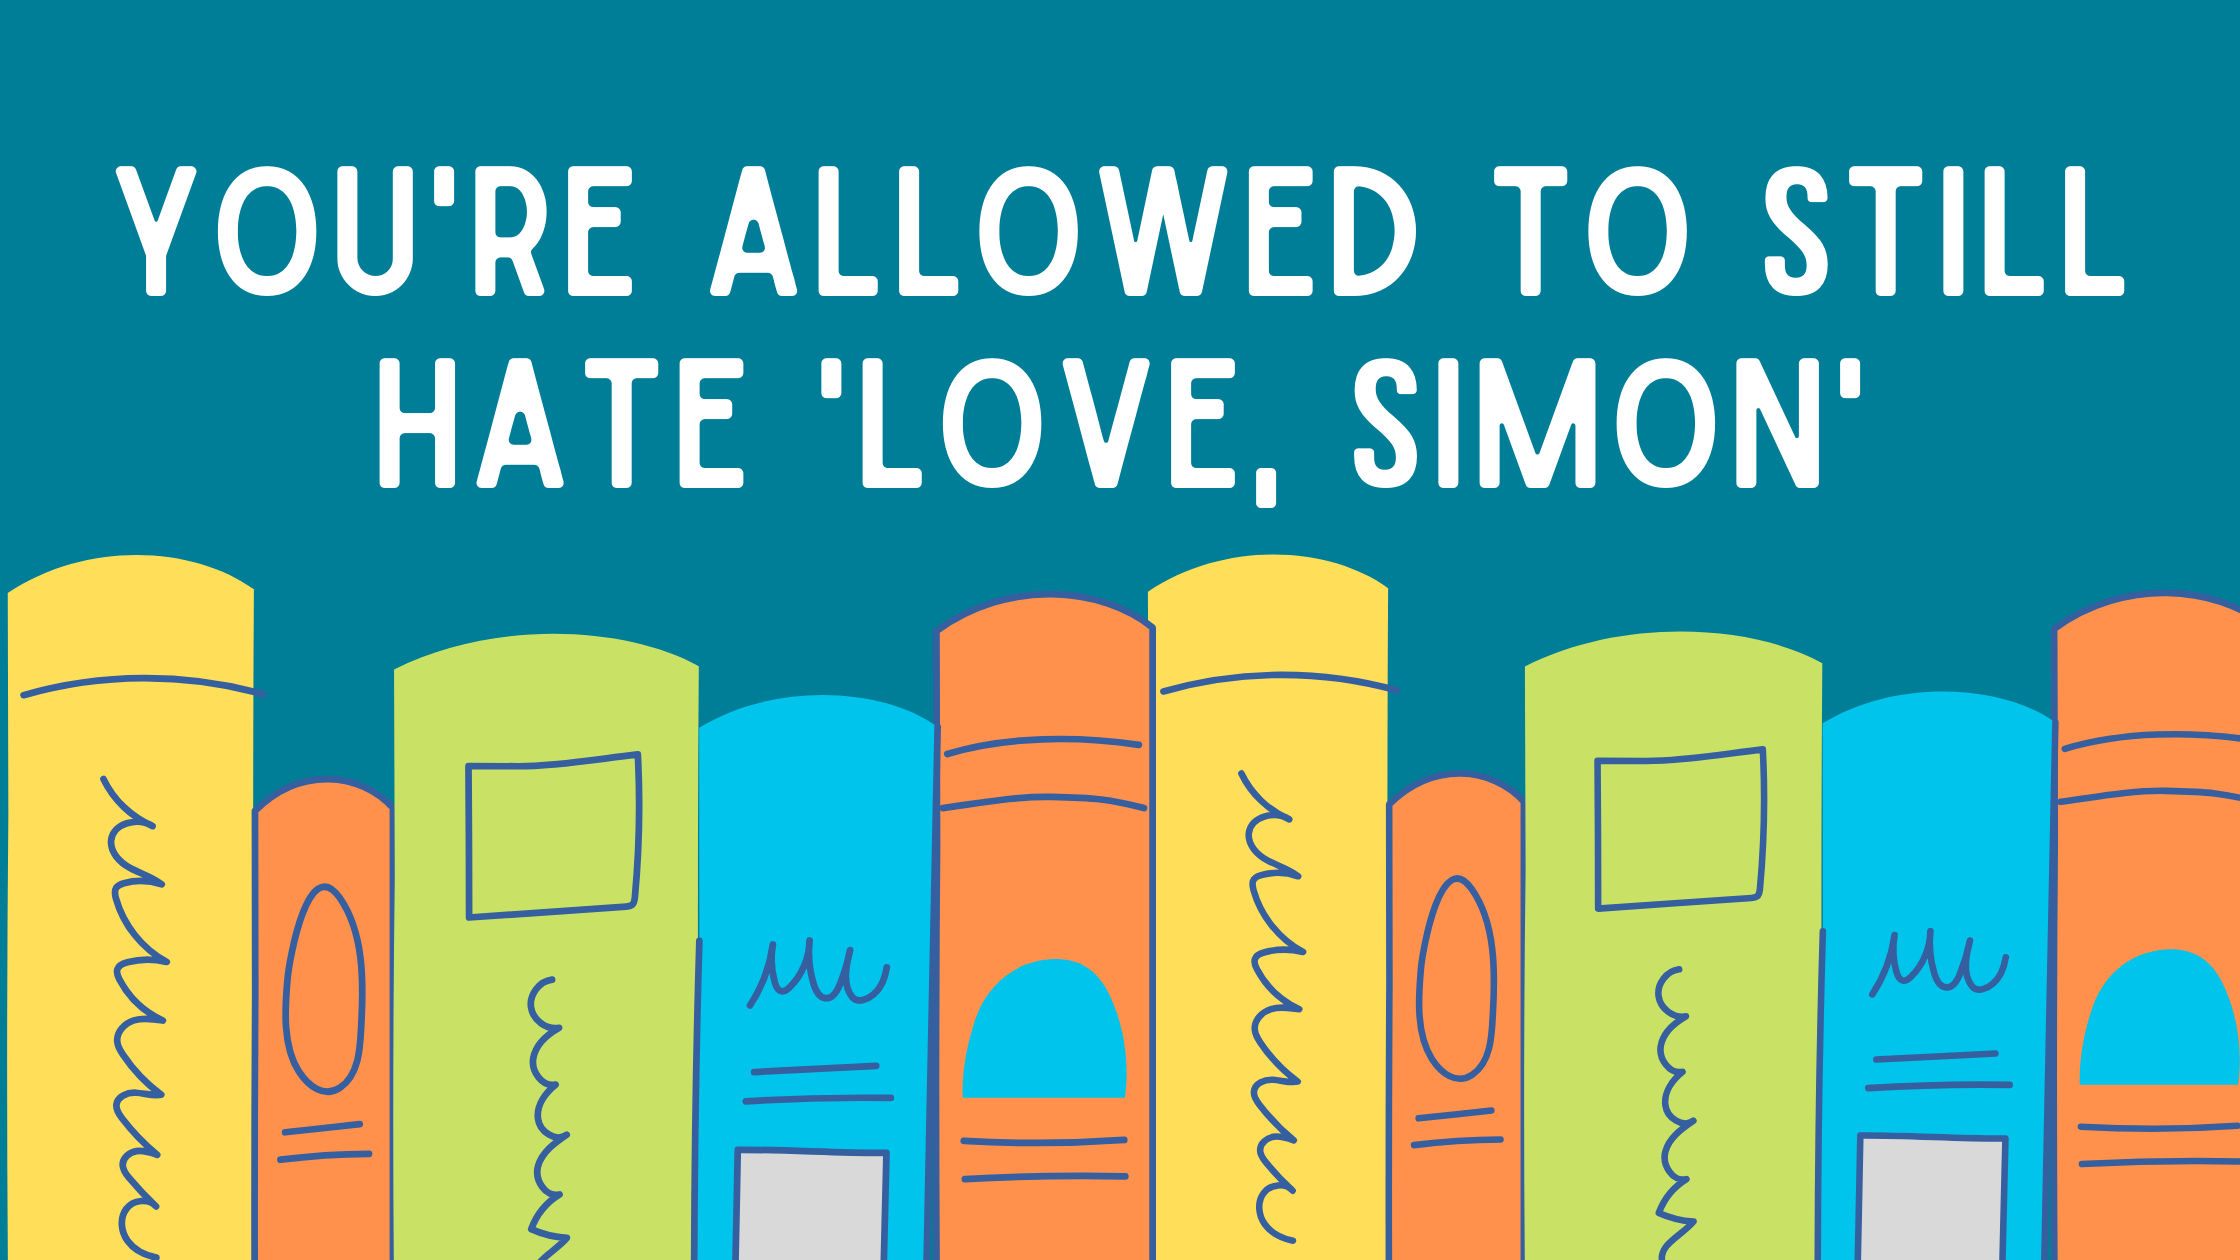 You're allowed to still hate Love, Simon